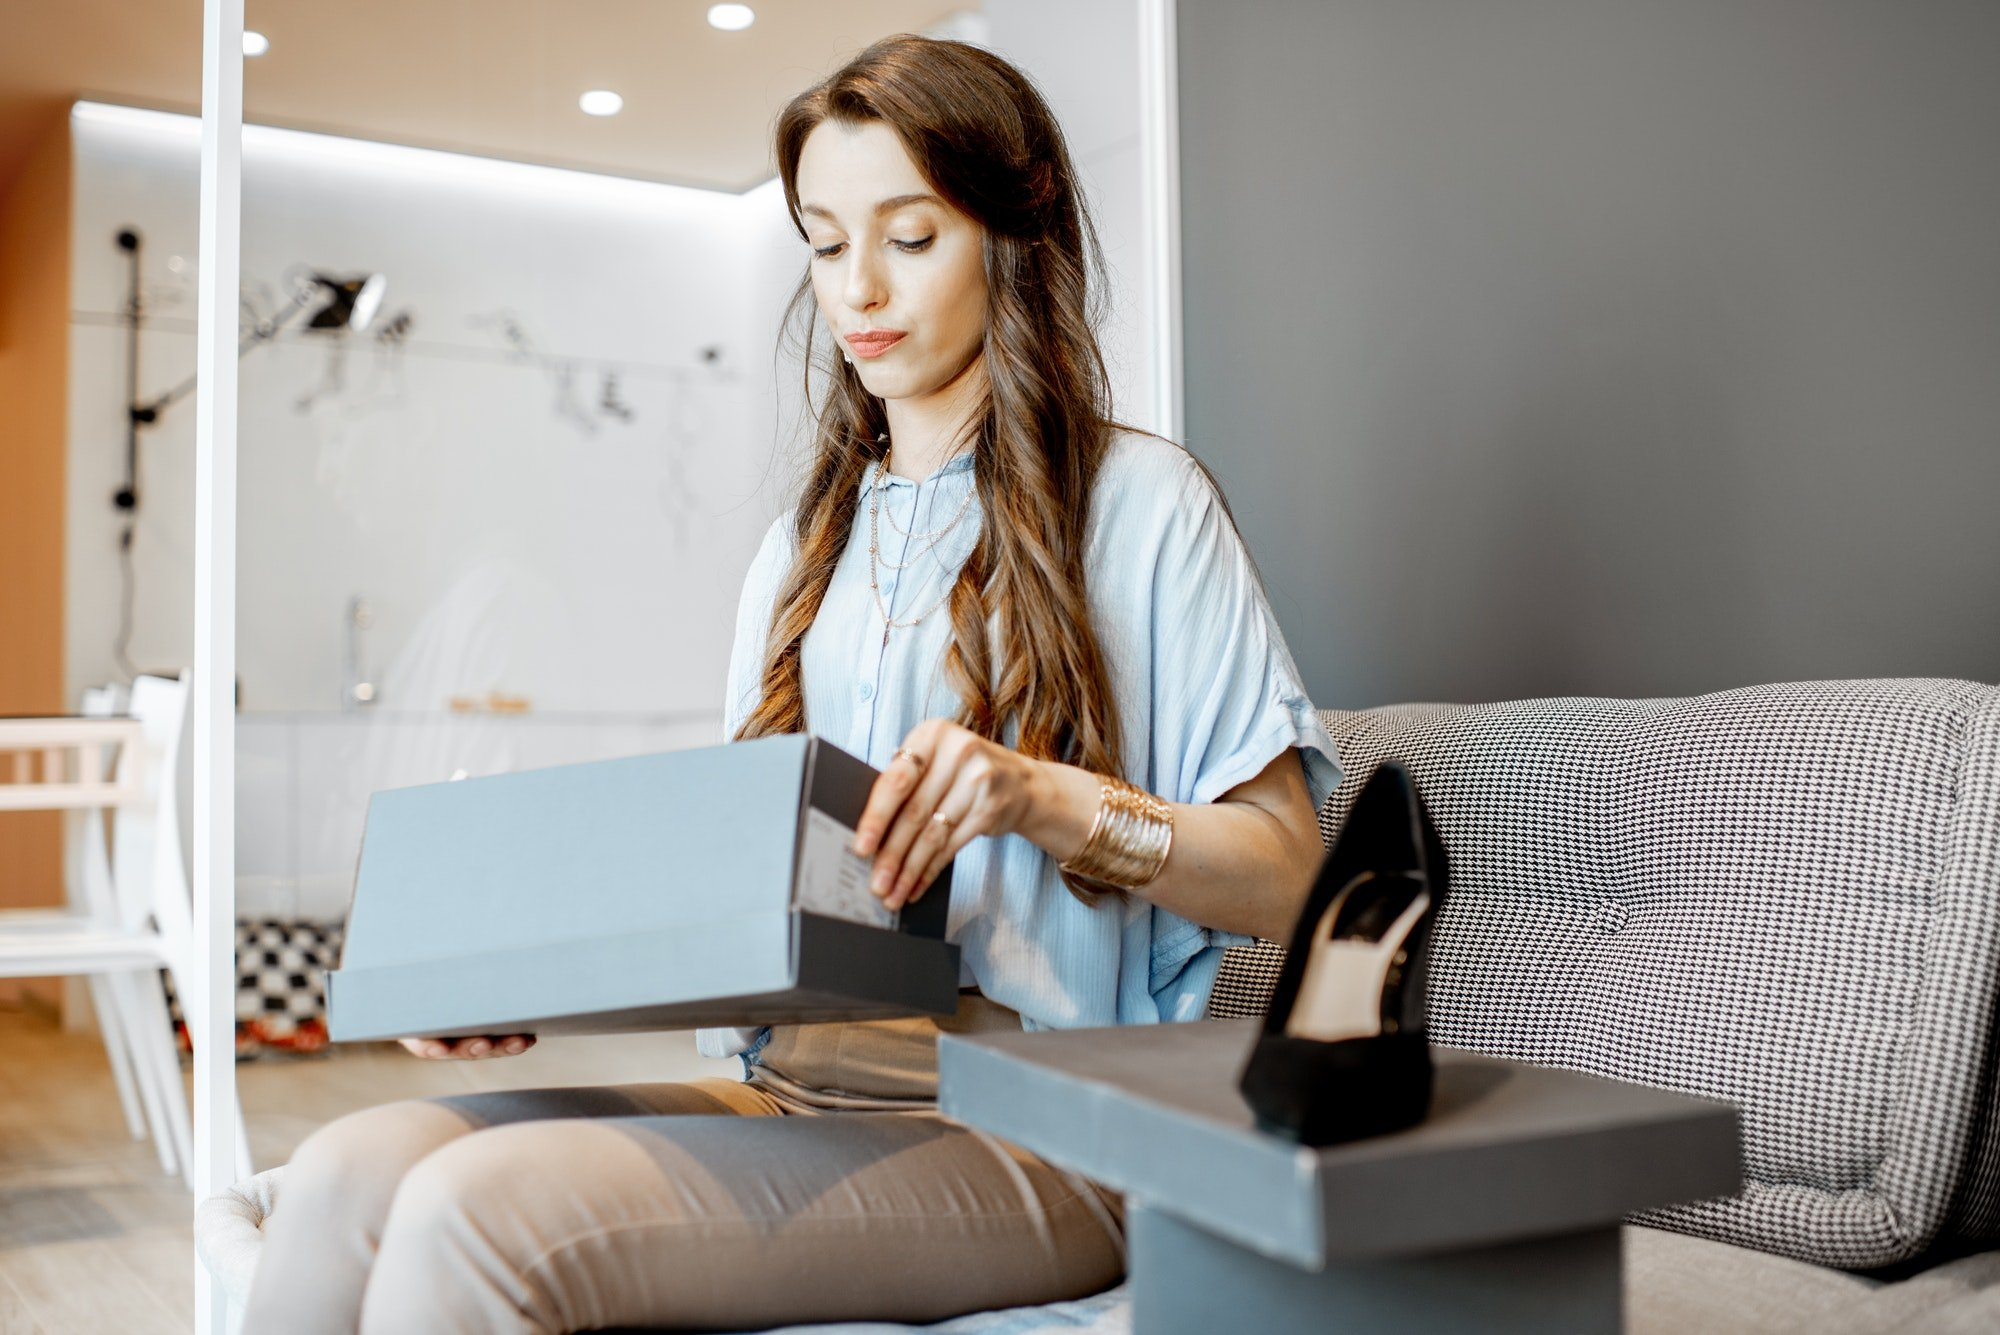 Woman with online puchases at home